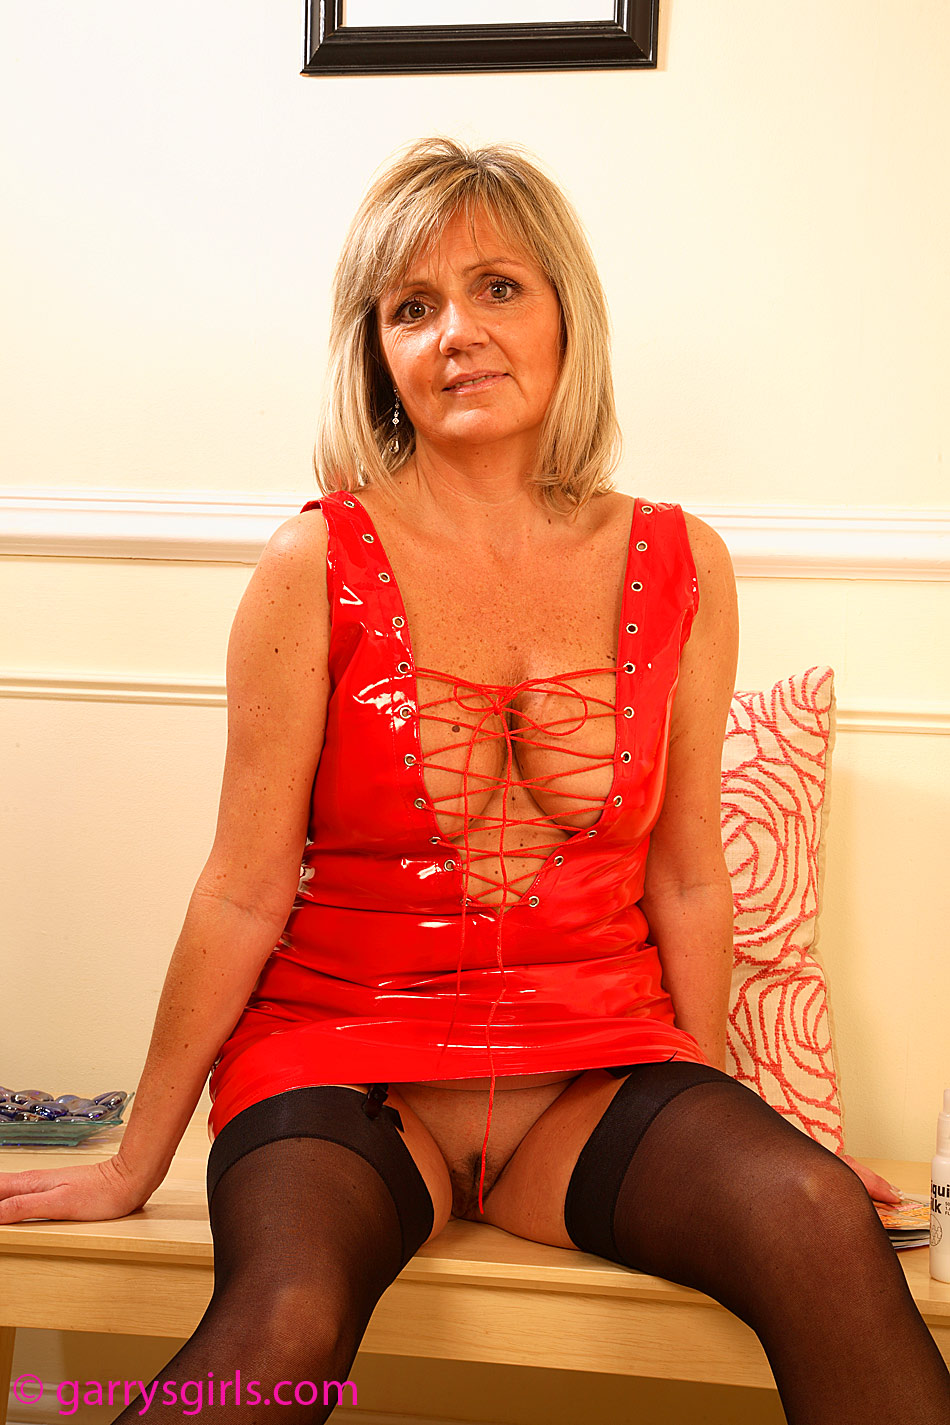 Mature mom janet in fuck date after her divorce Part 3 9